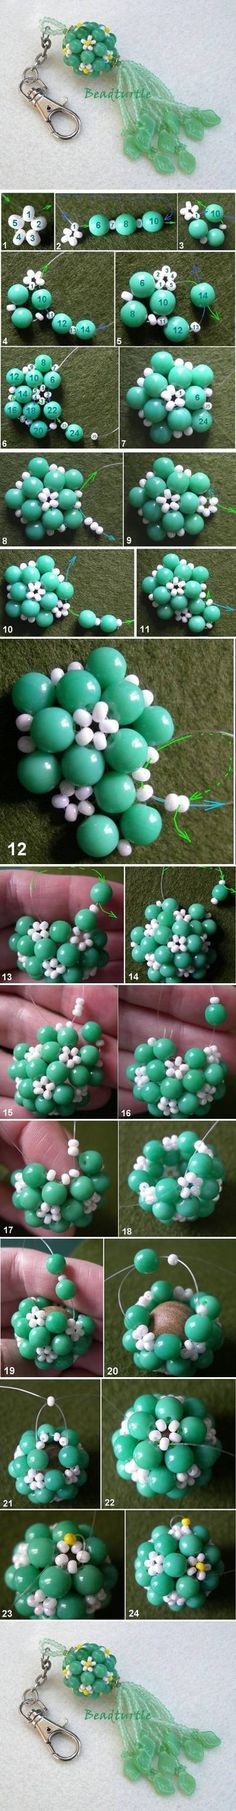 DIY Key Chain Beads Charm Could never get the hang of beaded ball beads...will totally try again with this tute